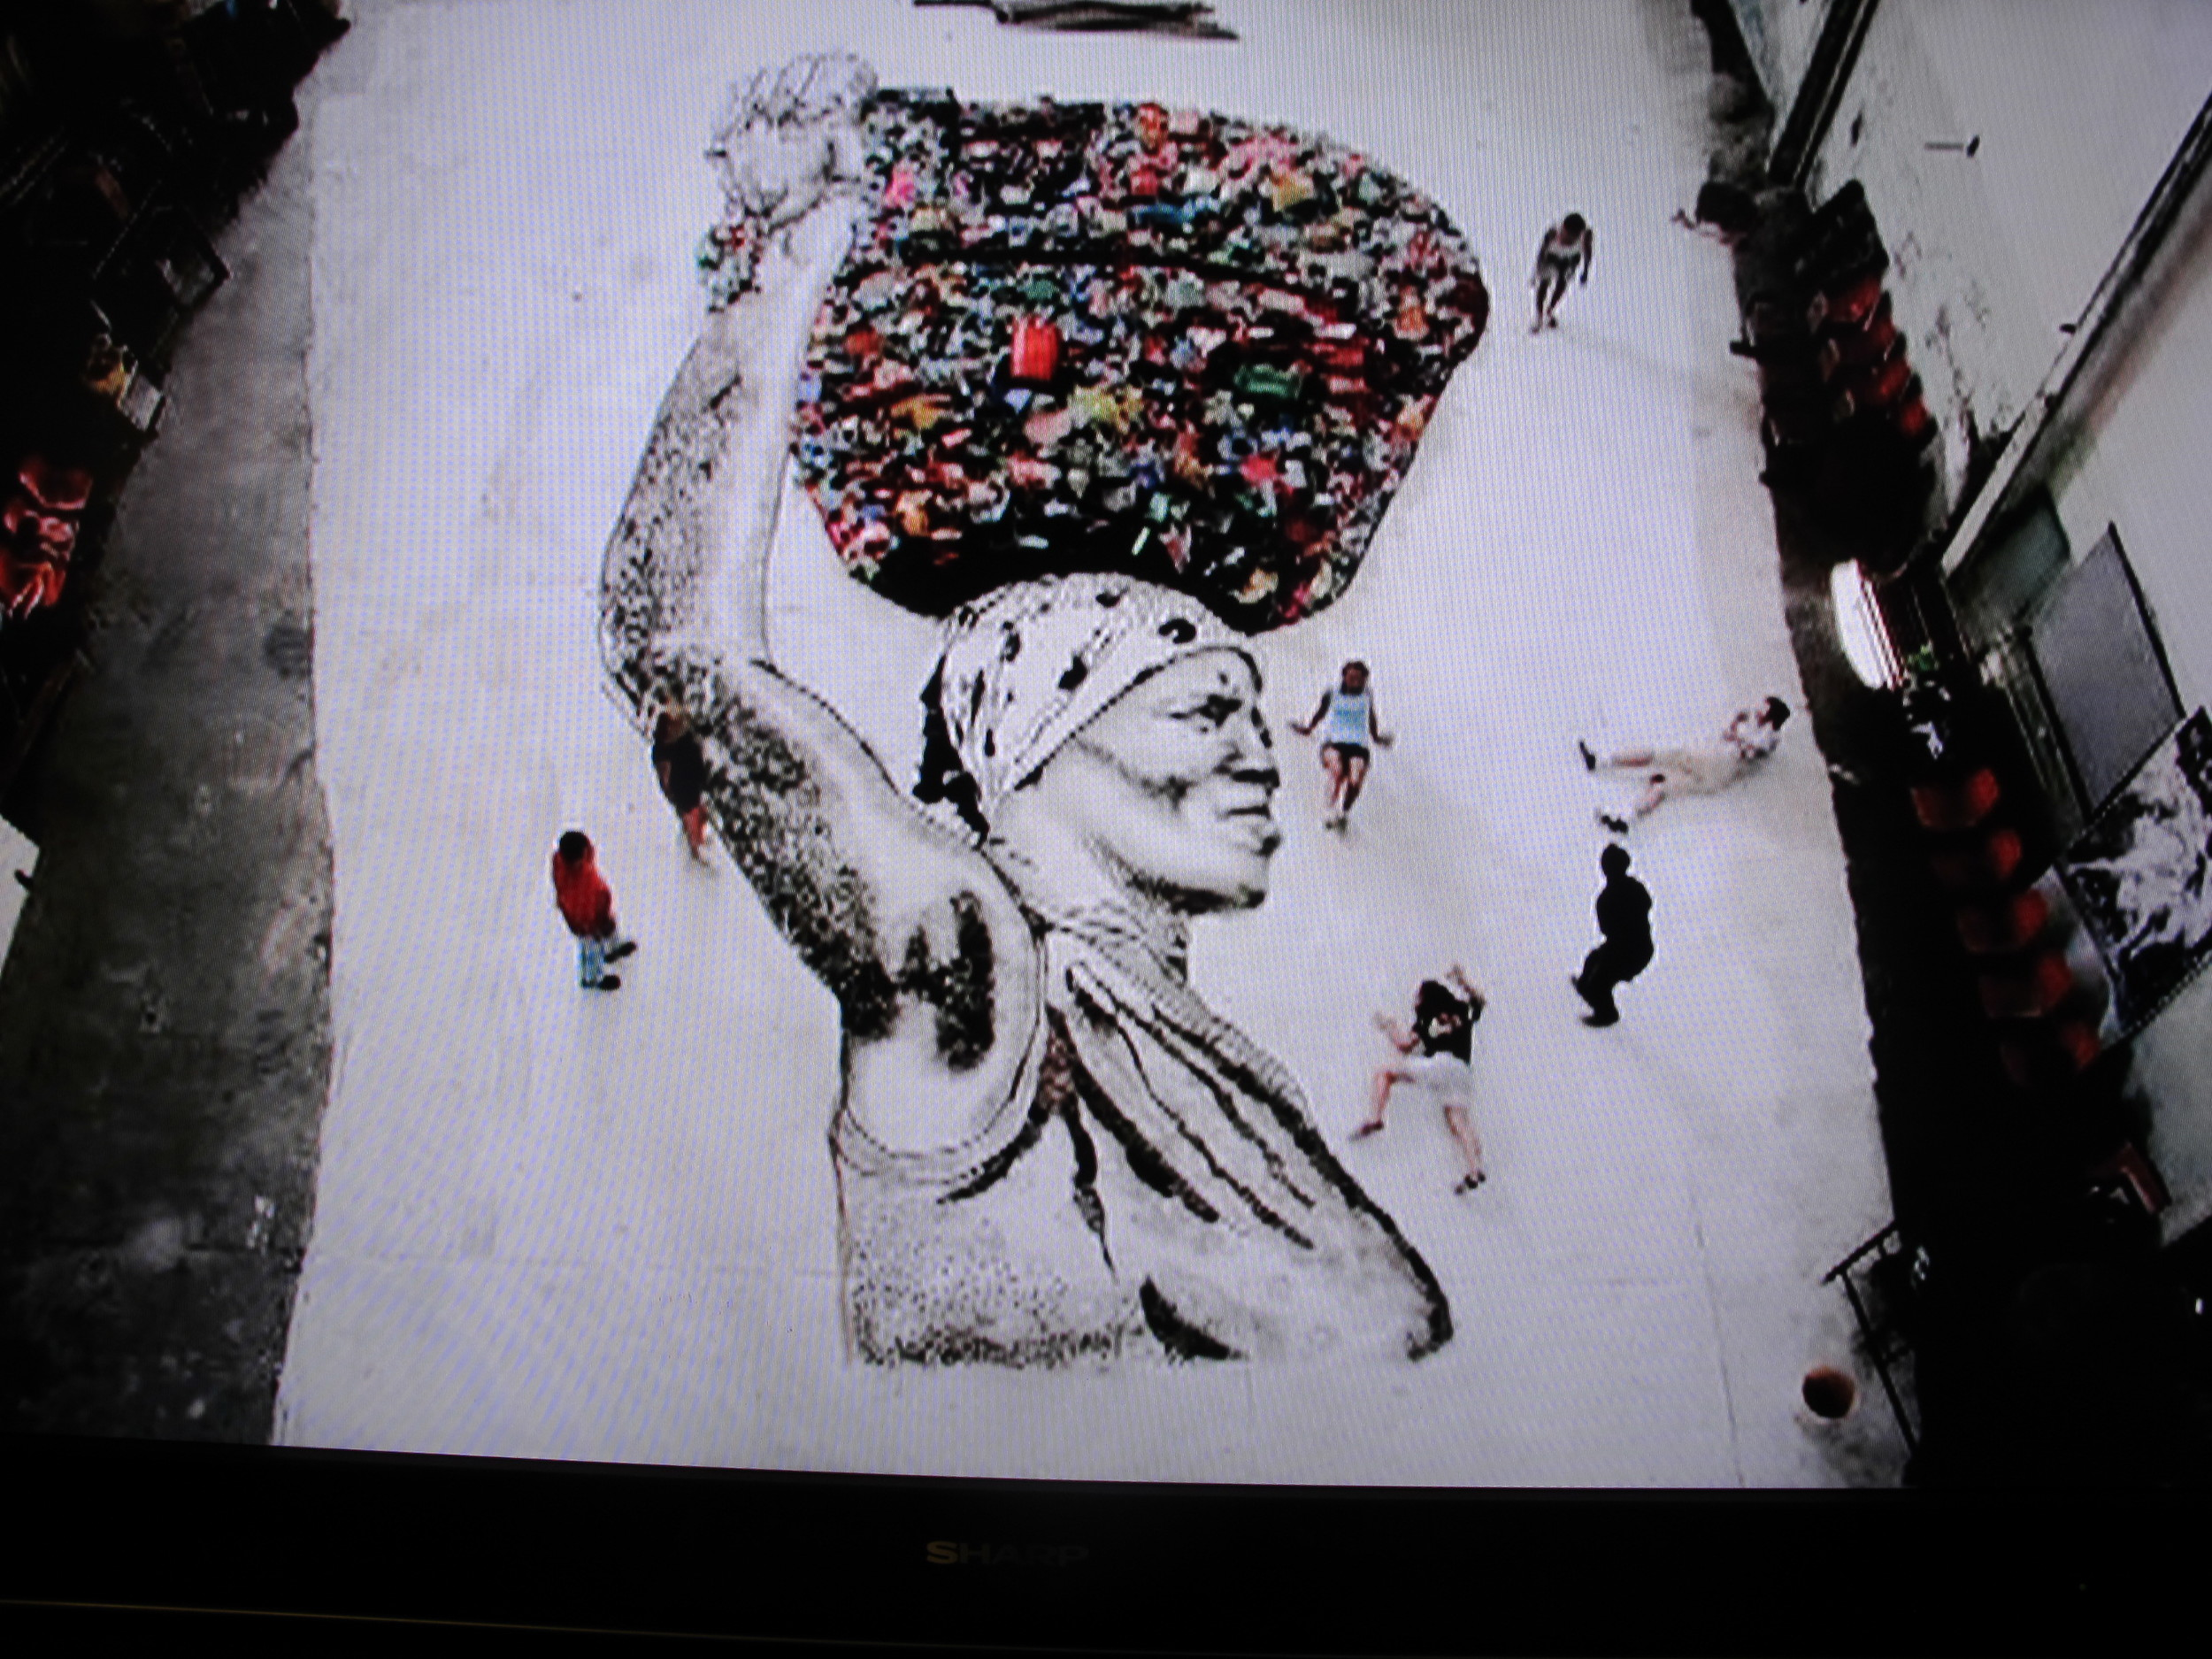 This portrait—a floor-sized blowup of a photo by Vik Muniz of one of the Rio women—was turned into art by the trash-pickers themselves, using landfill junk to outline and, in a sense, paint the image.